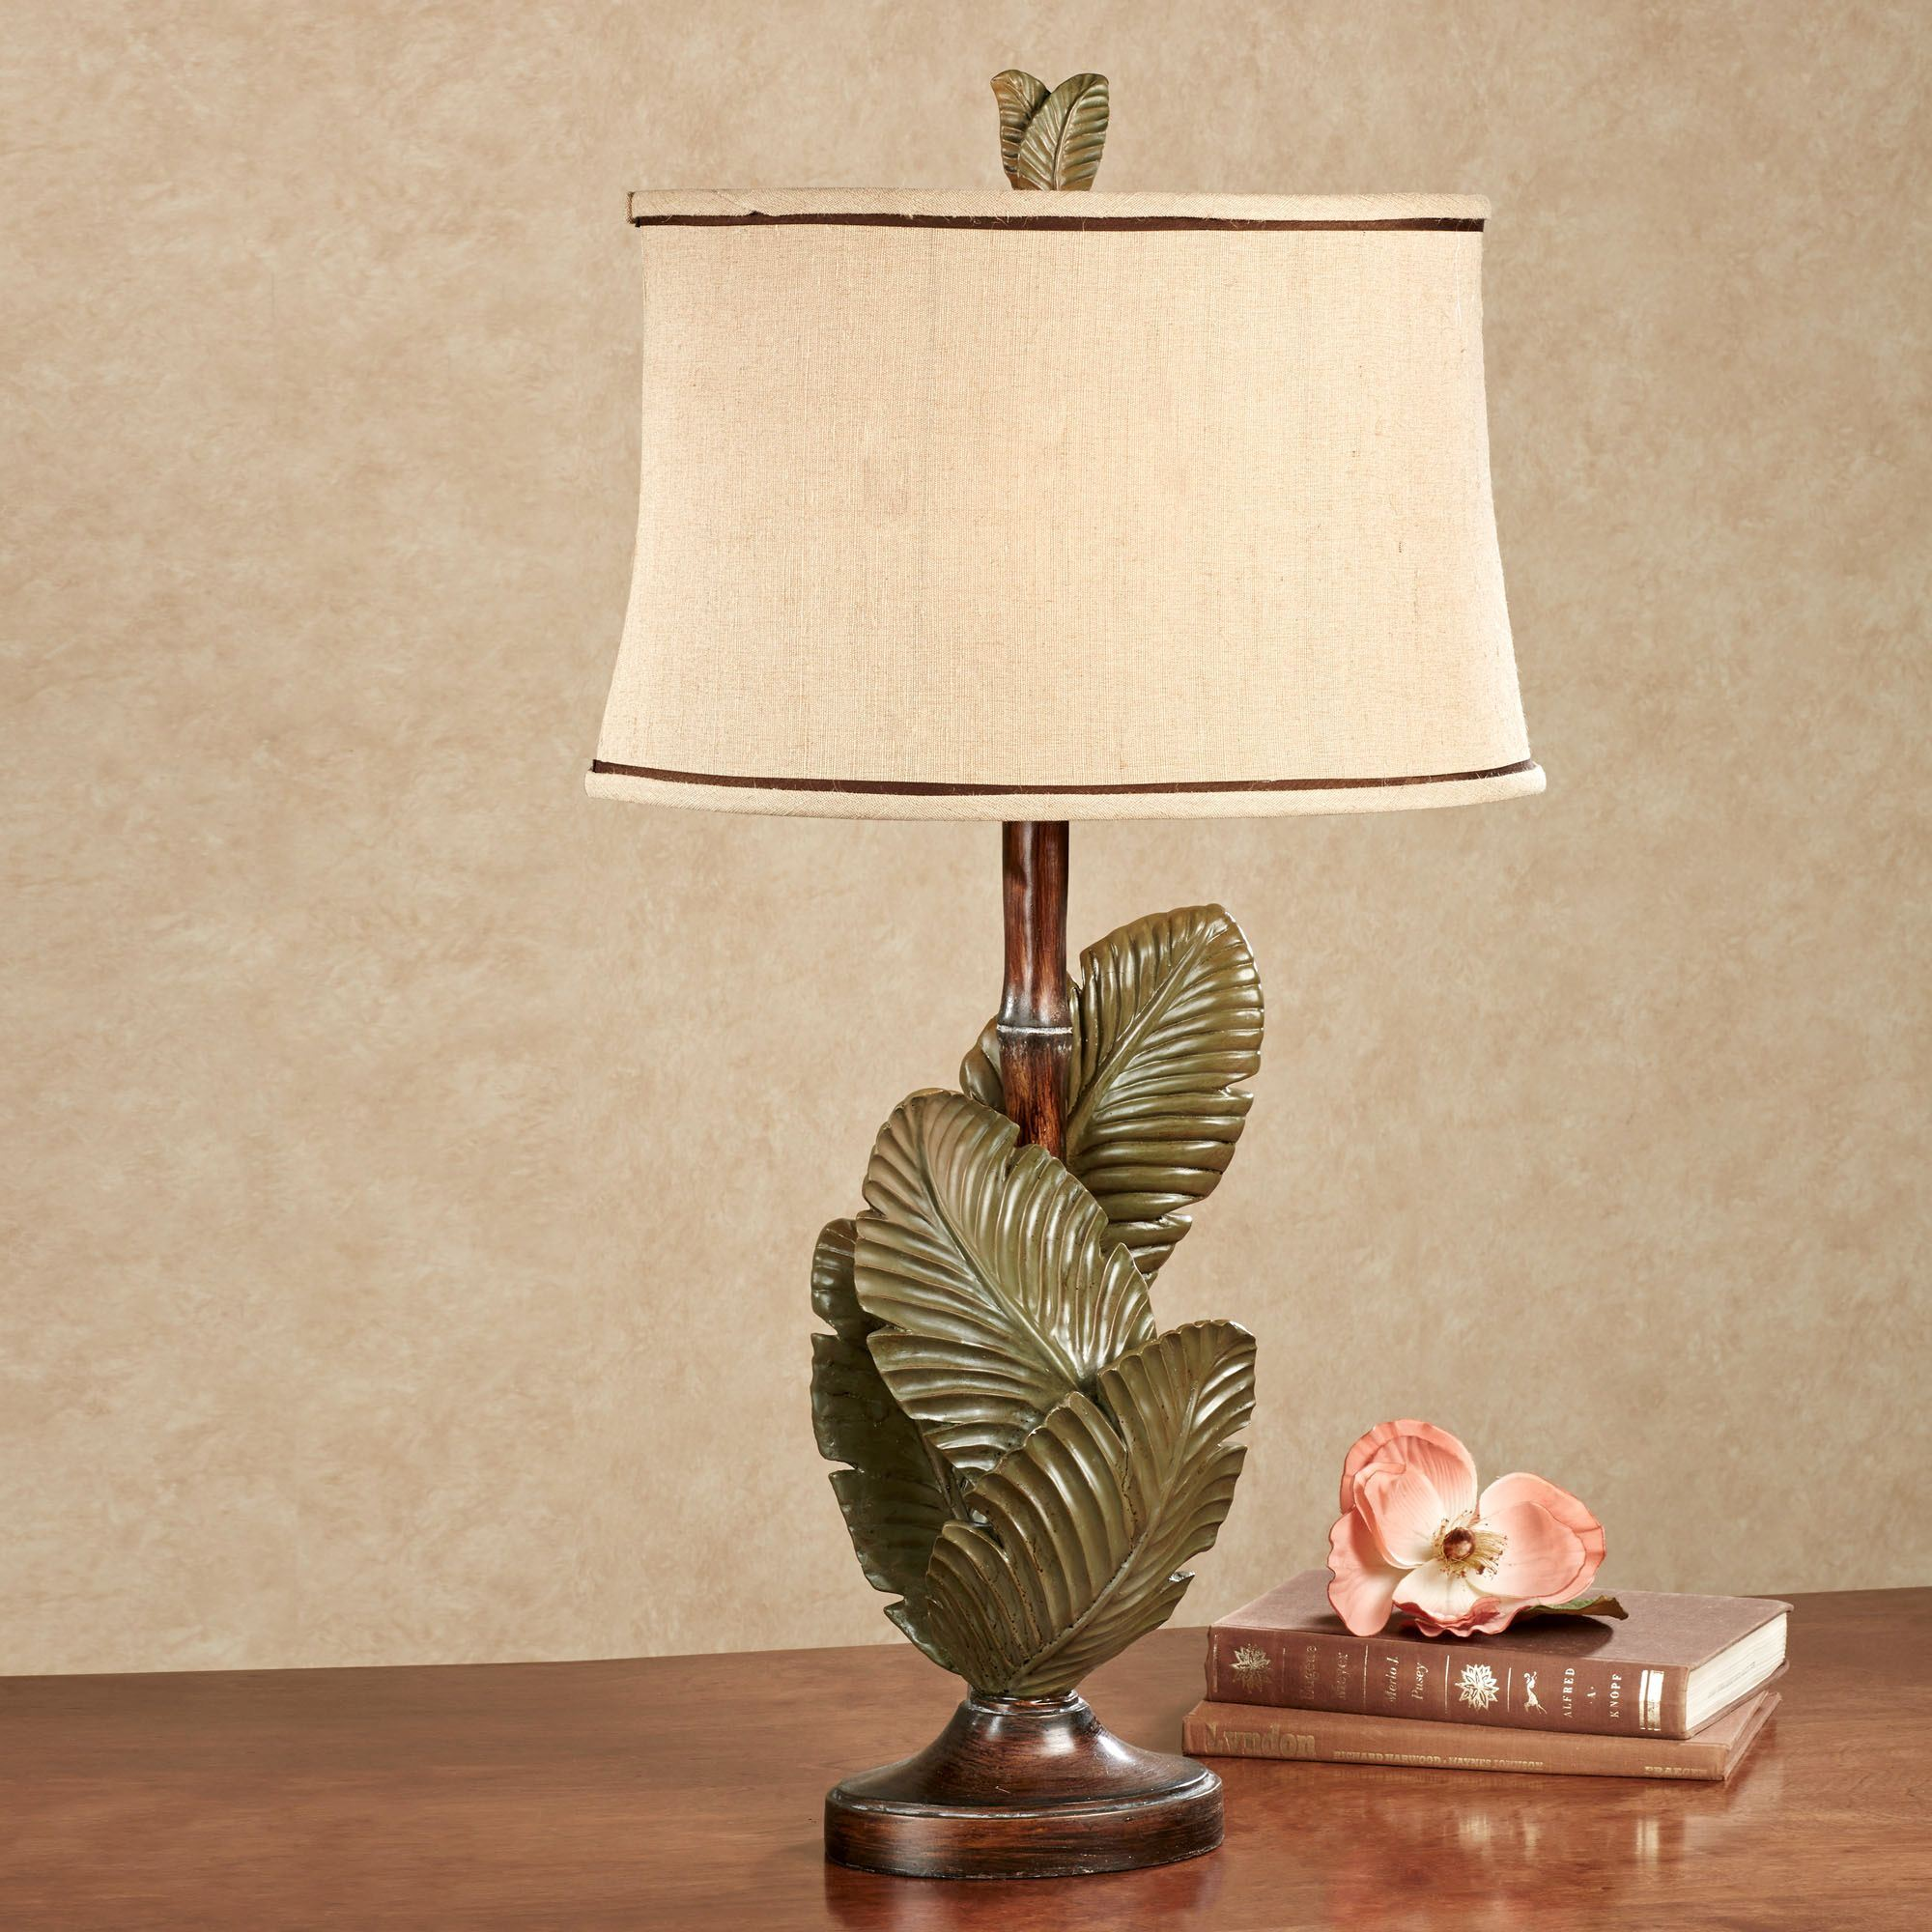 Layered Palms Tropical Table Lamp